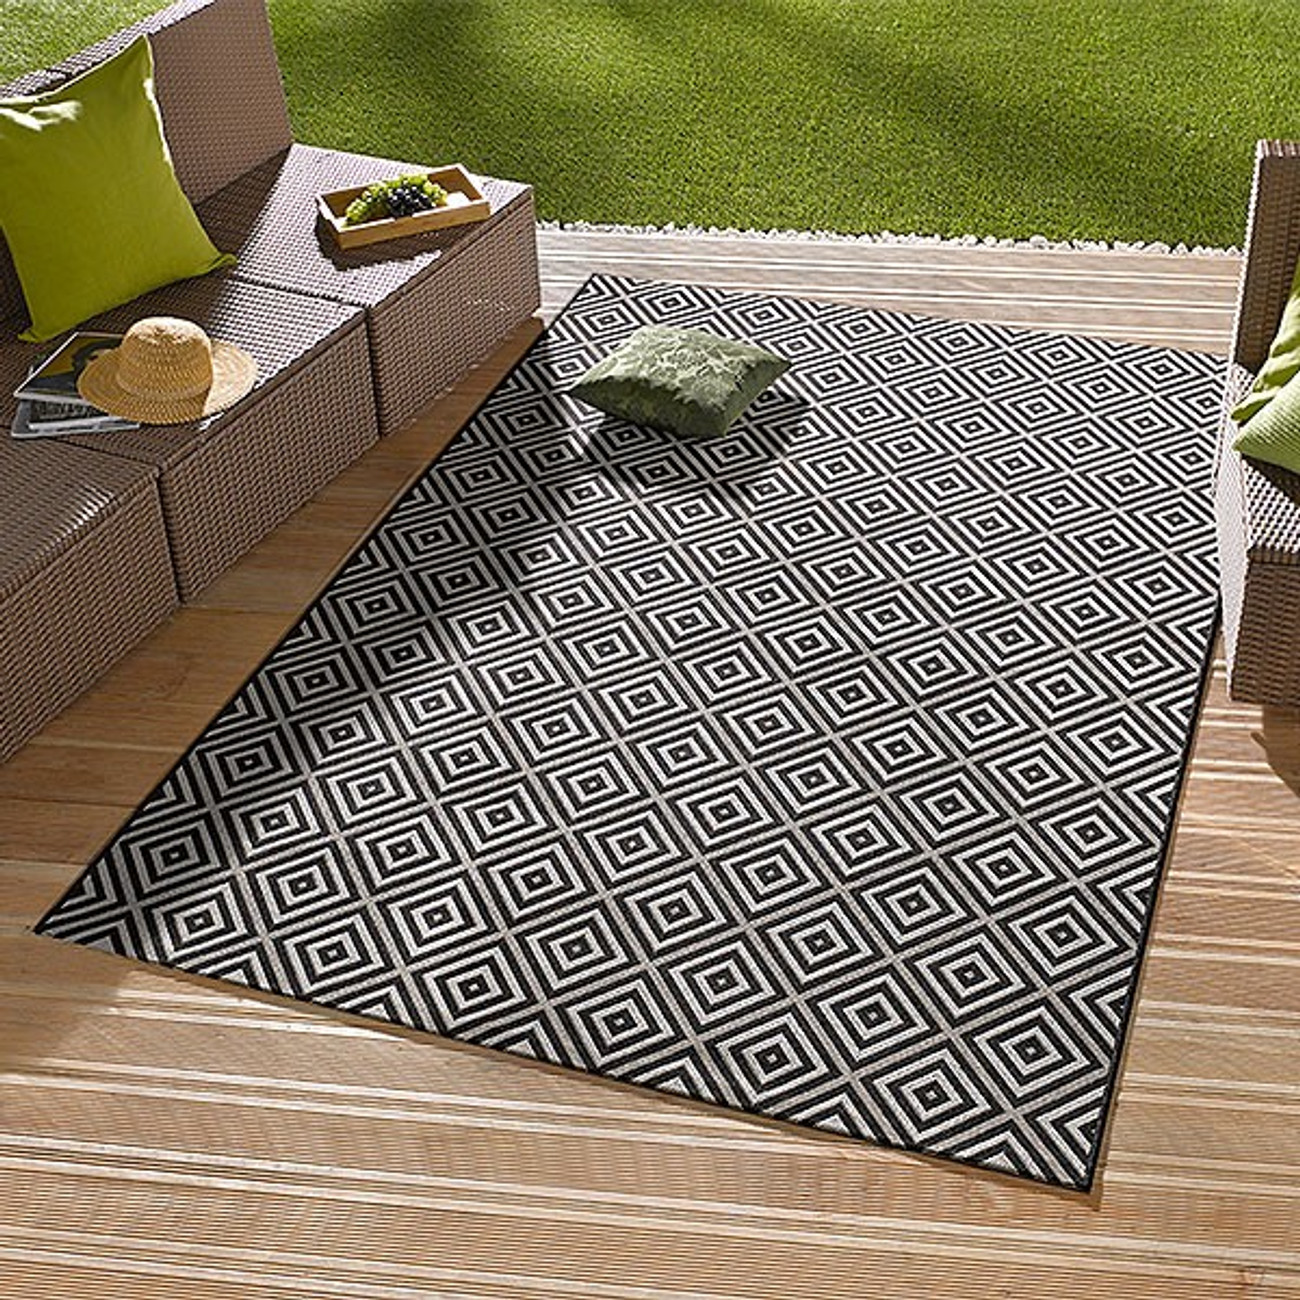 Teppich Outdoor in outdoorteppich karo schwarz 102470 teppiche outdoor teppiche